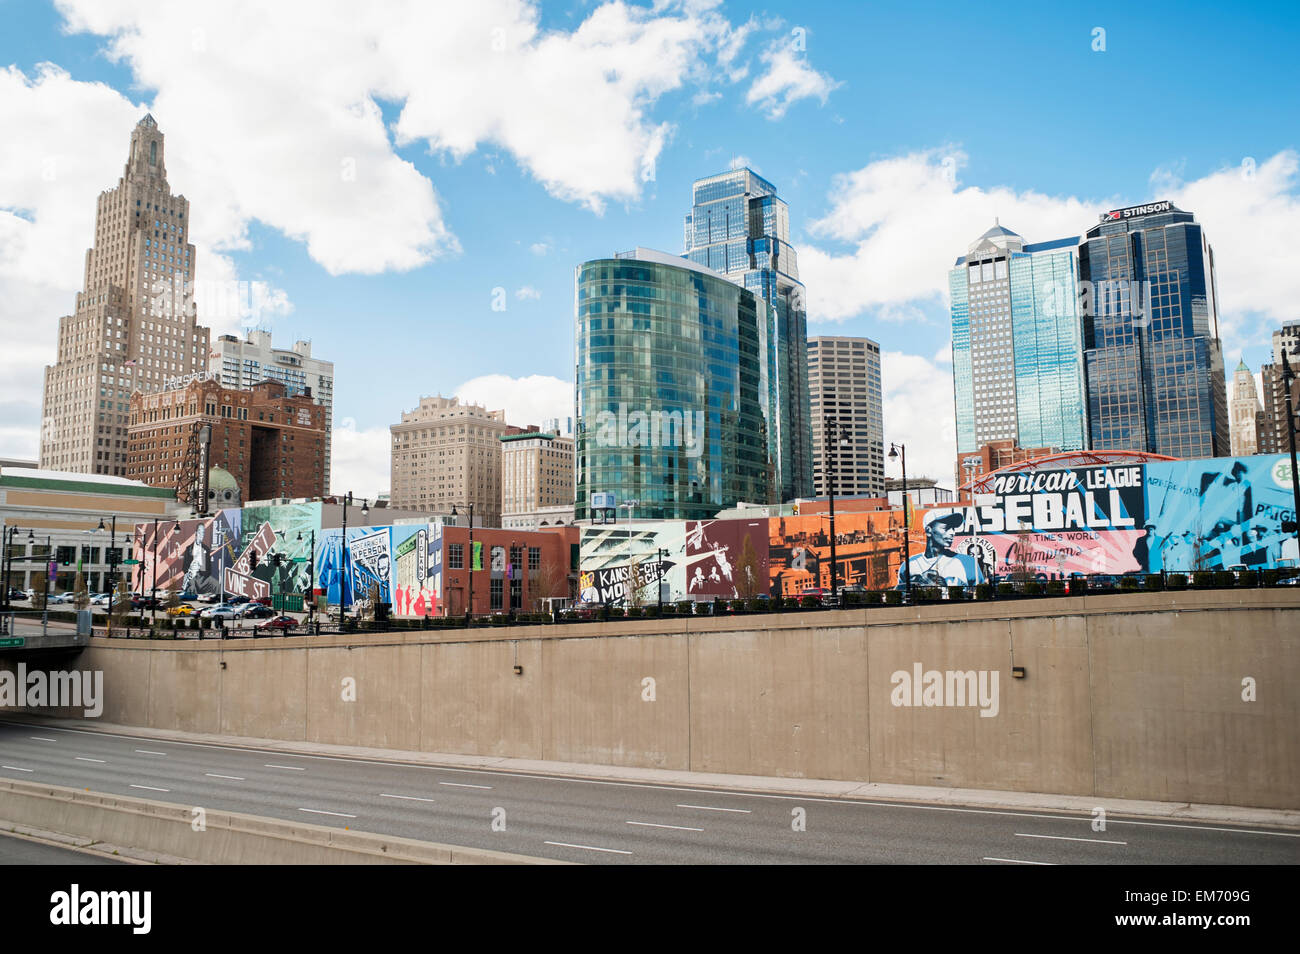 Painted murals on buildings with skyscrapers in the background stock photo royalty free image for American exteriors kc